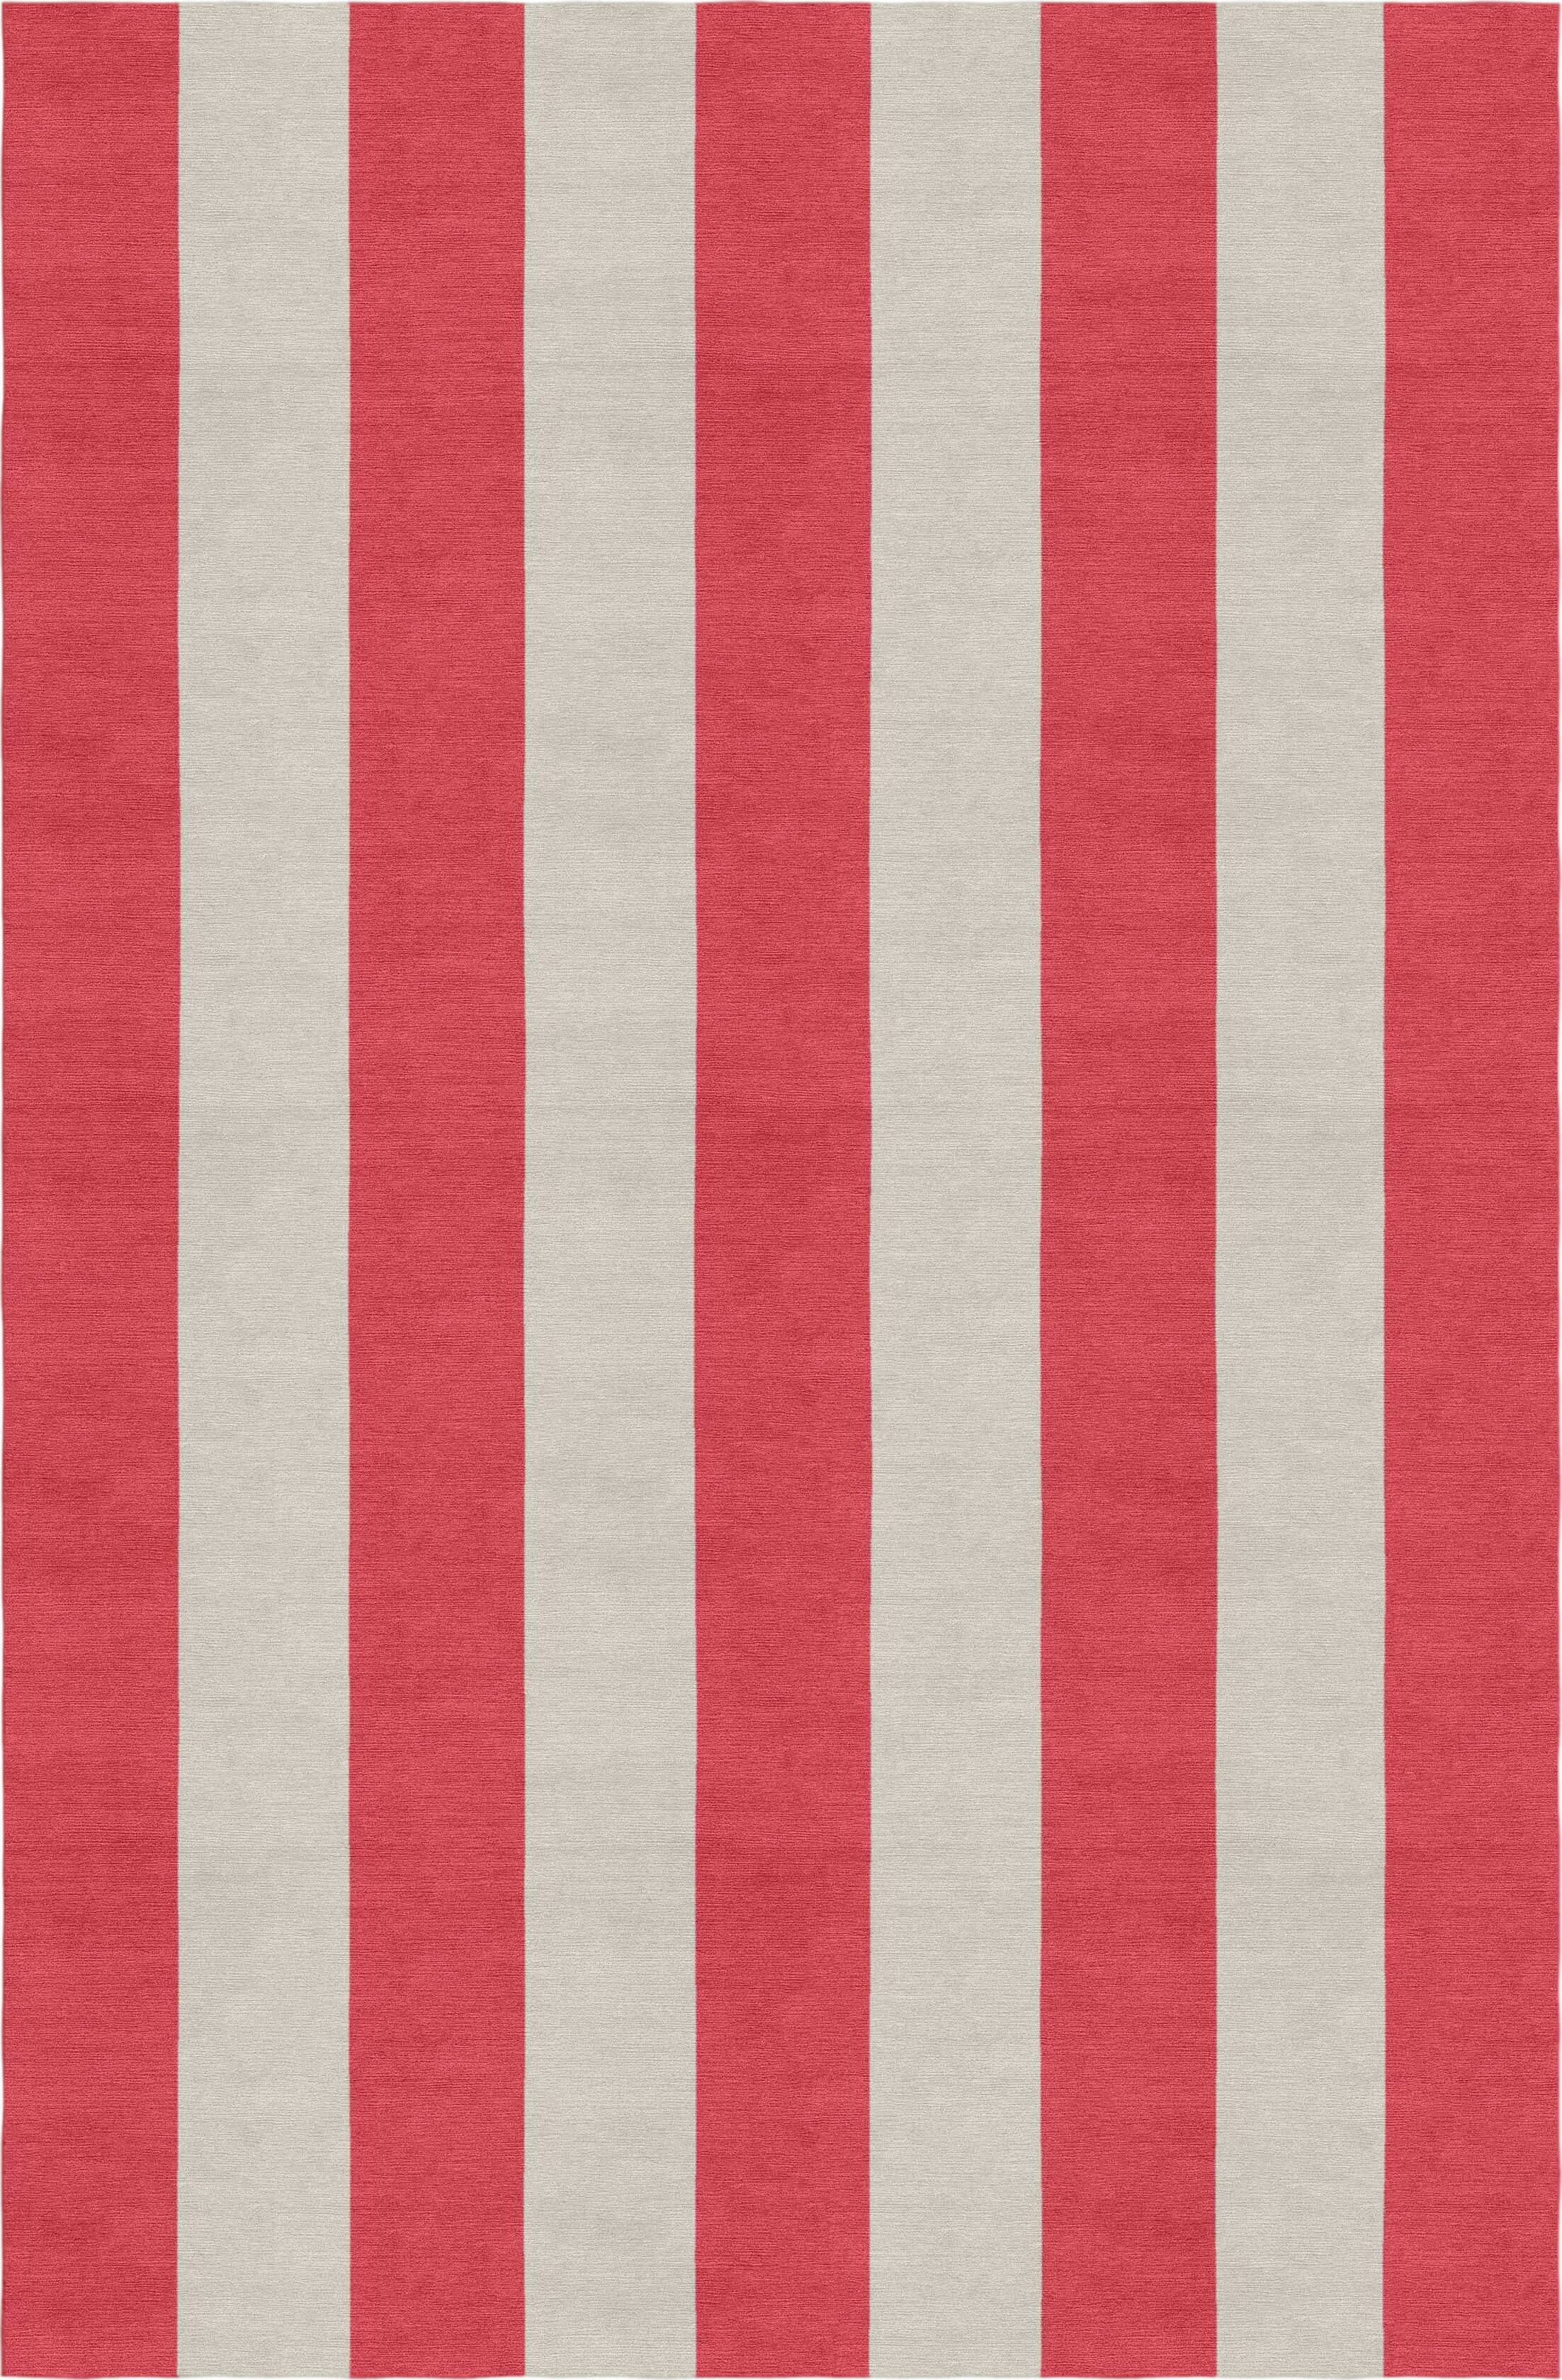 Claverton Down Stripe Hand-Woven Wool Silver/Red Area Rug Rug Size: Rectangle 6' X 9'